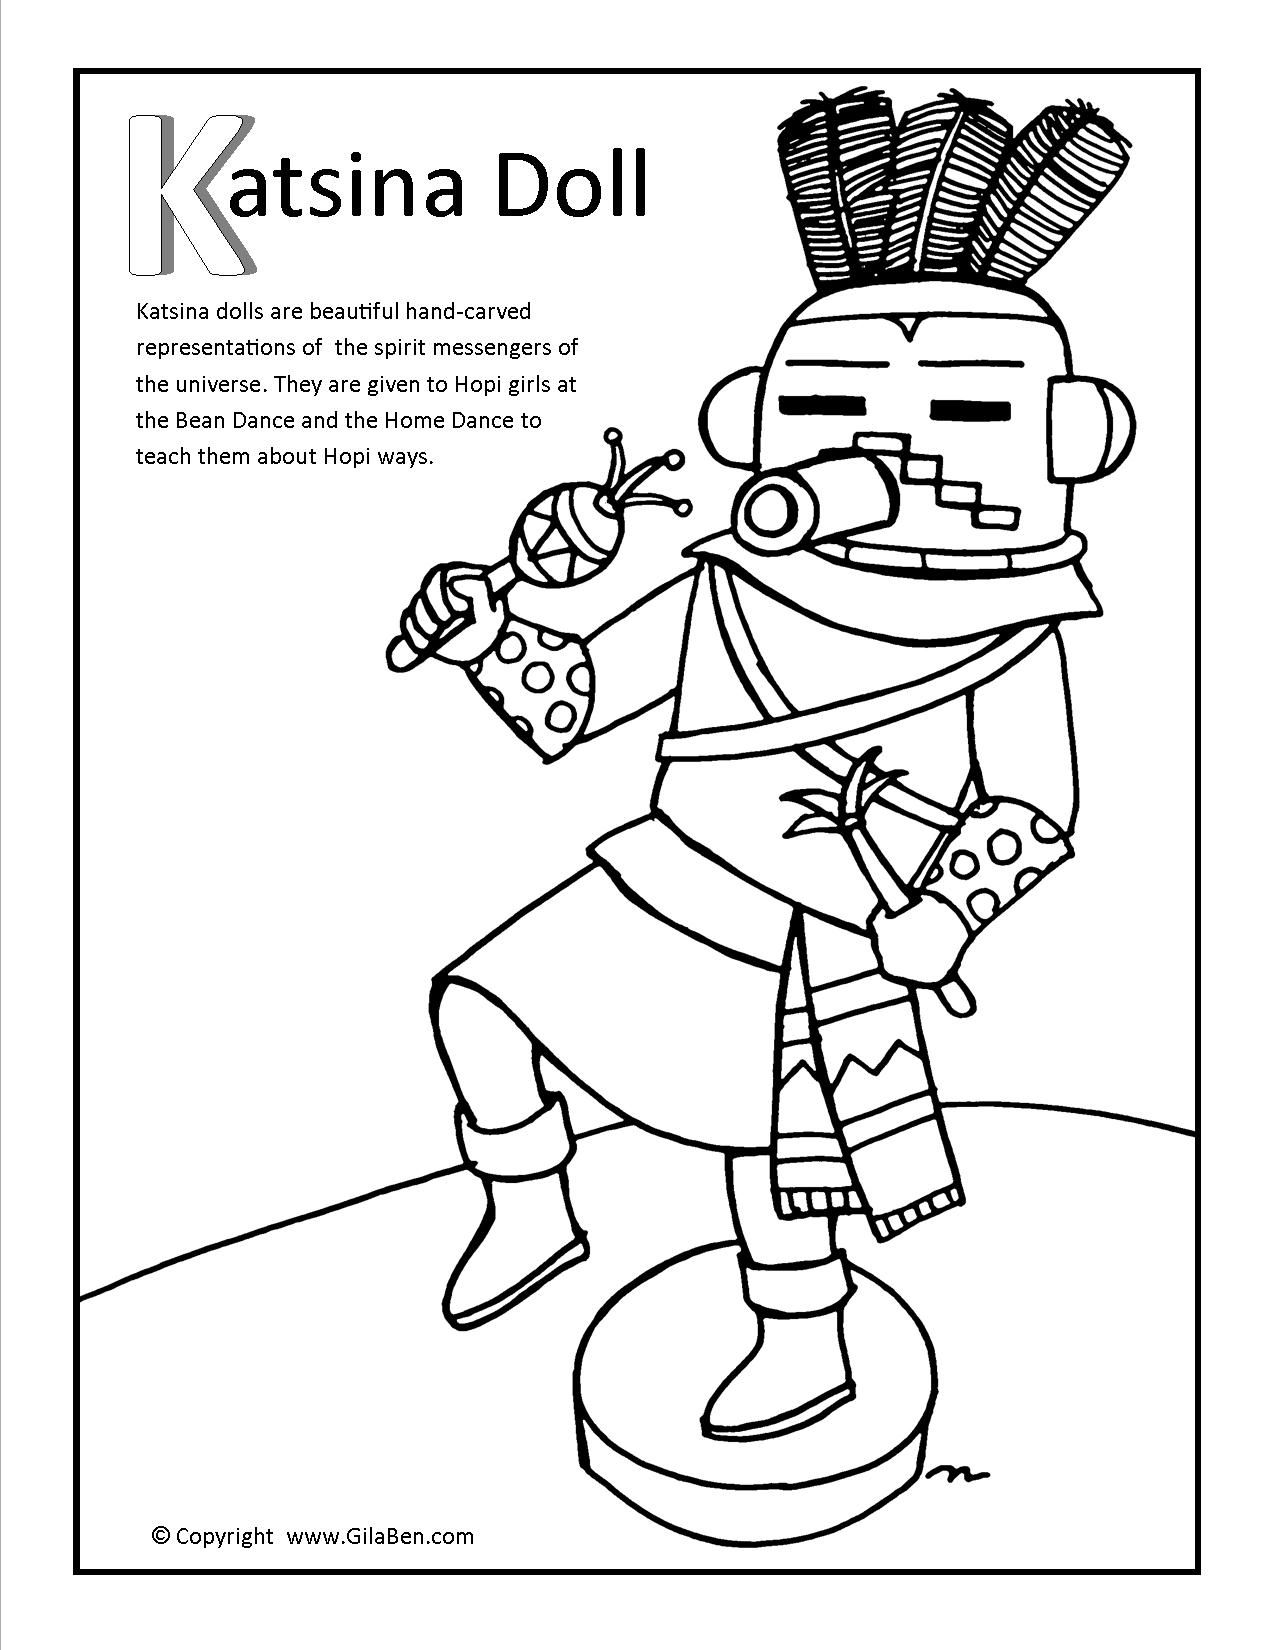 katsina doll coloring page more arizona coloring pages at gilaben